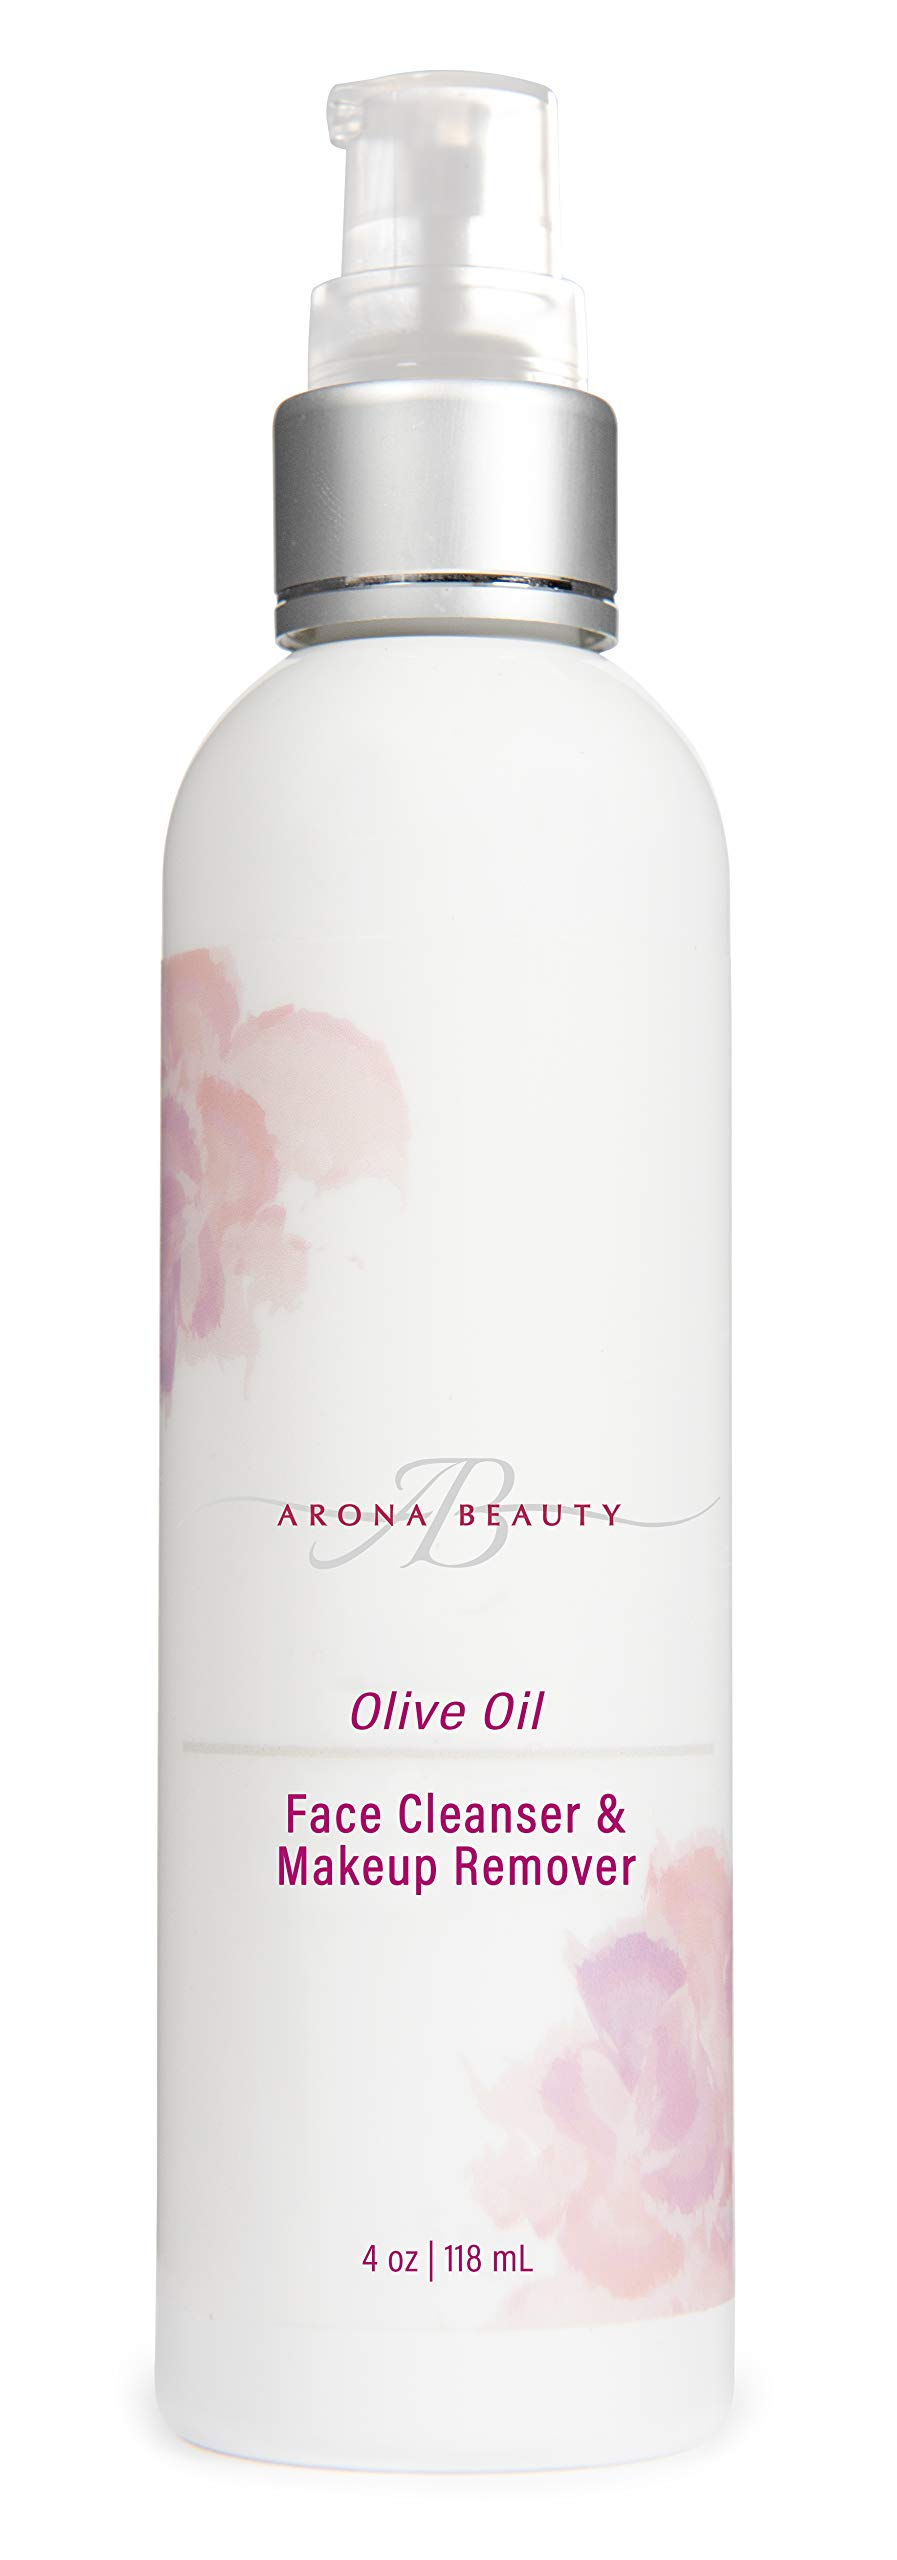 Arona Beauty Olive Oil Face Cleanser & Remover,4oz